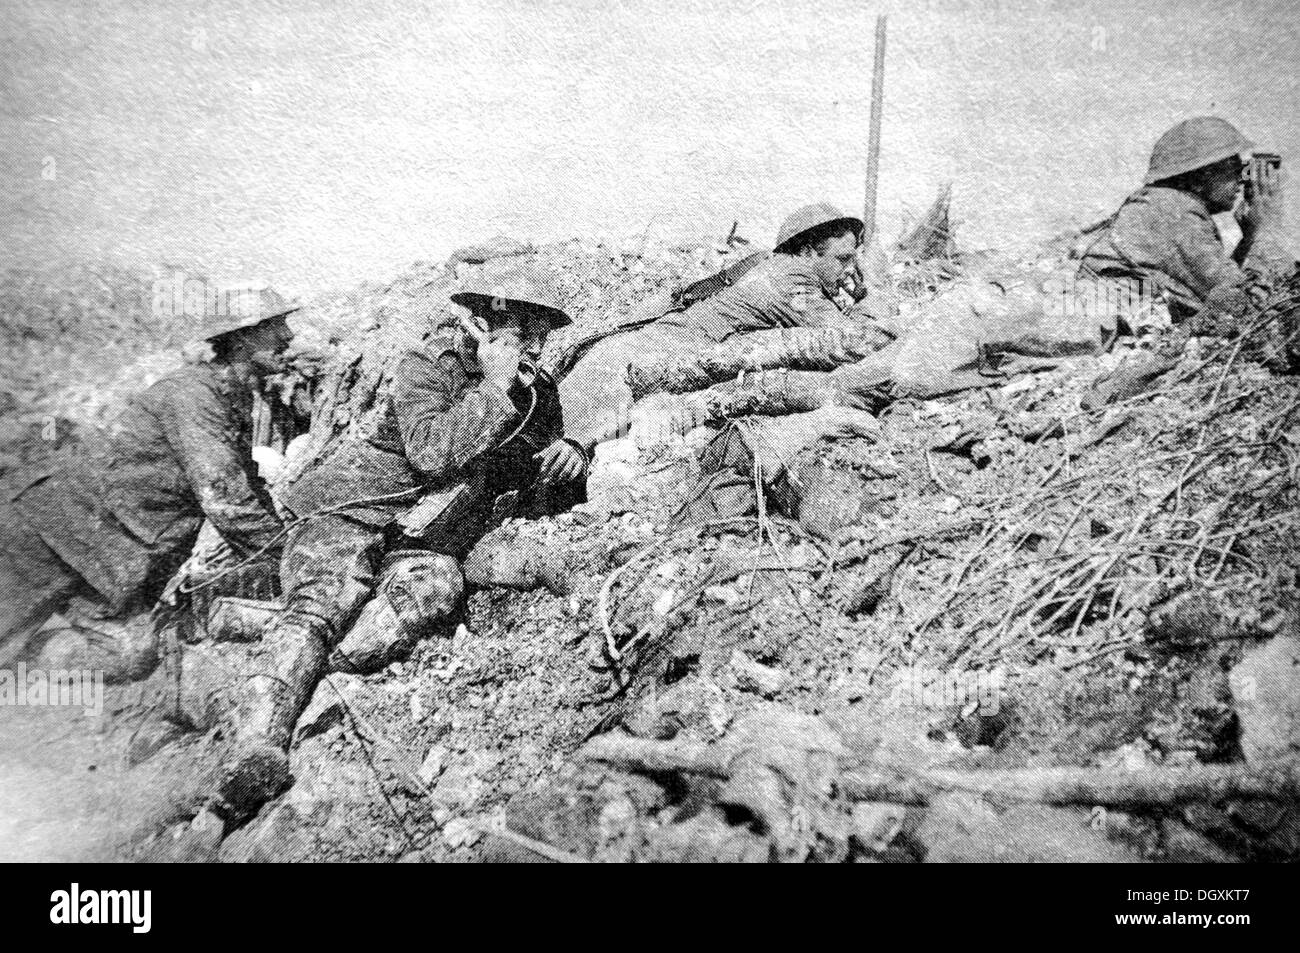 Old photograph of British observers, WWI - Stock Image